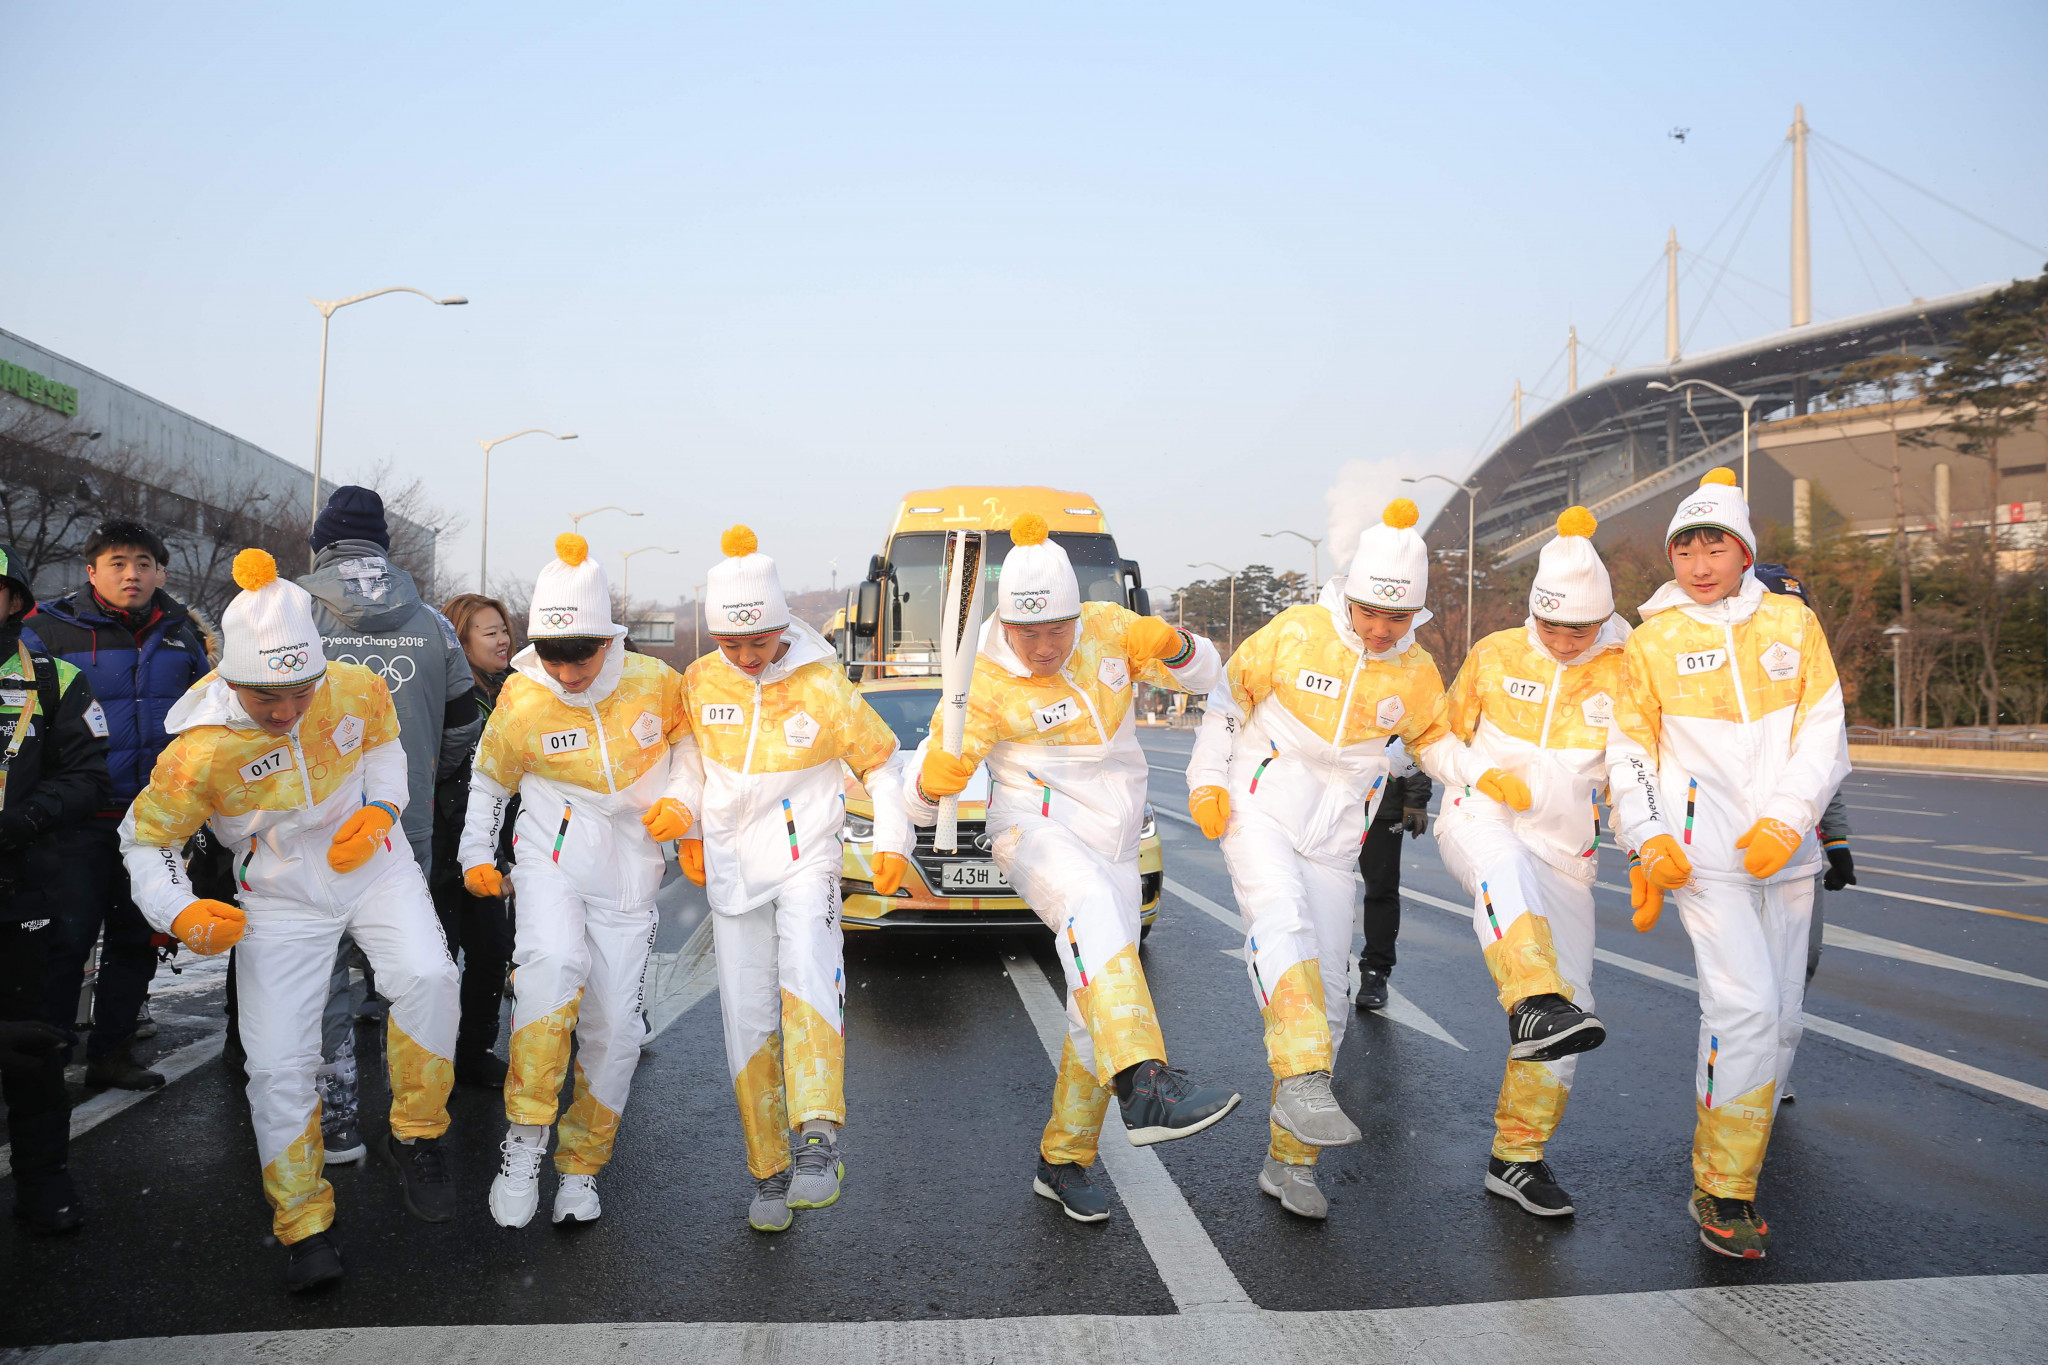 Torchbearers show some nifty footwork during the Relay ©Pyeongchang 2018